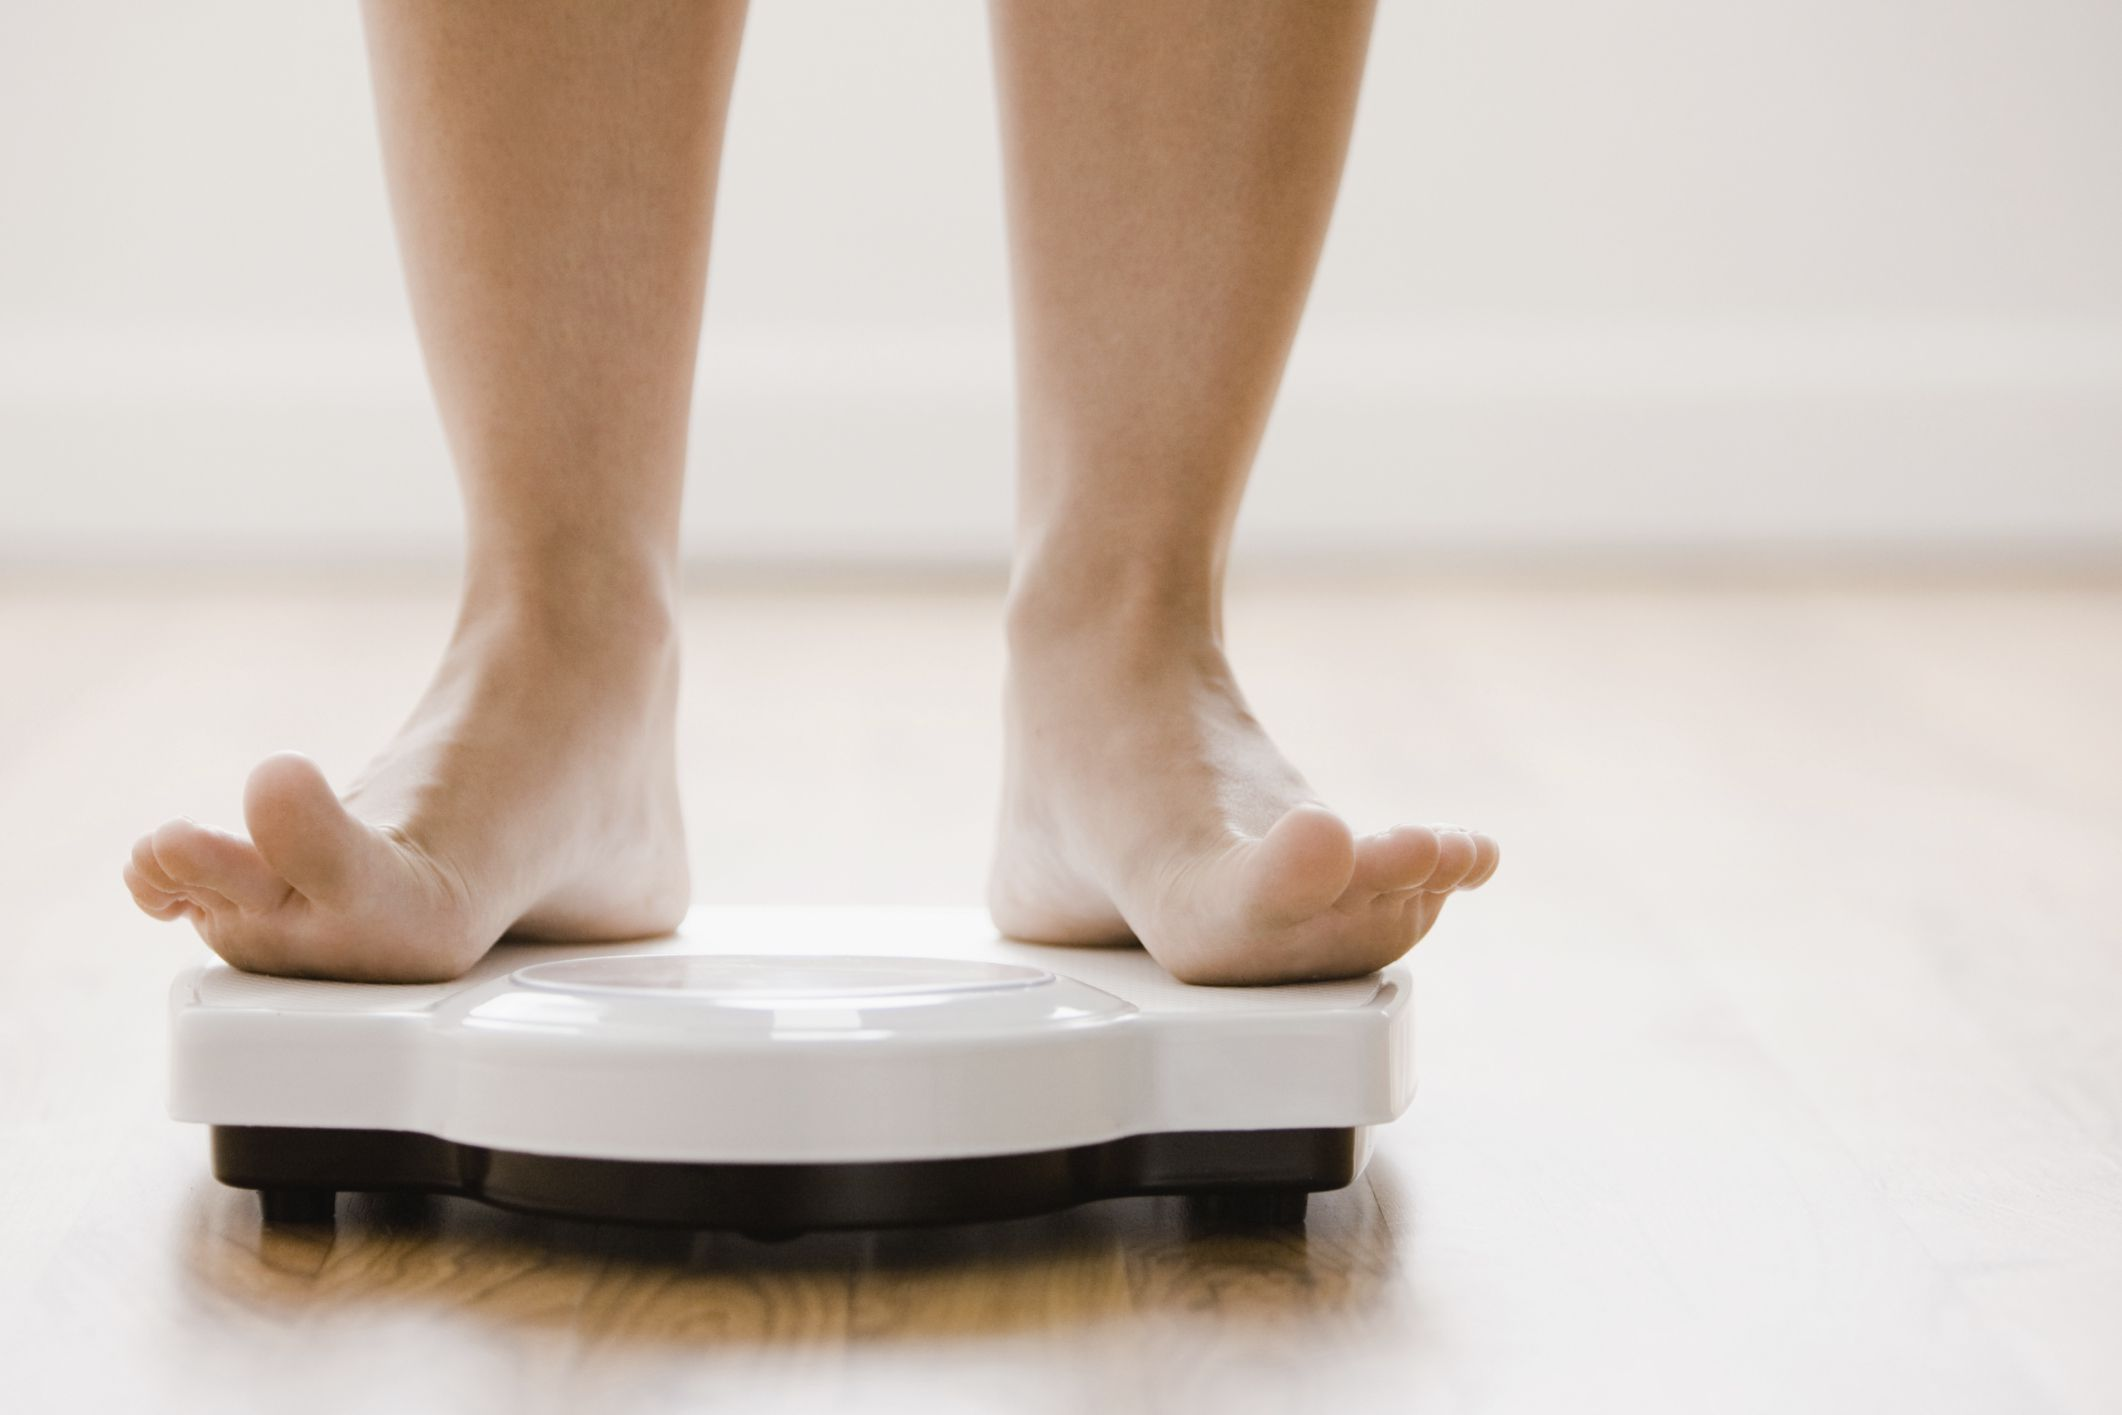 Does Lamictal Cause Weight Gain or Loss?